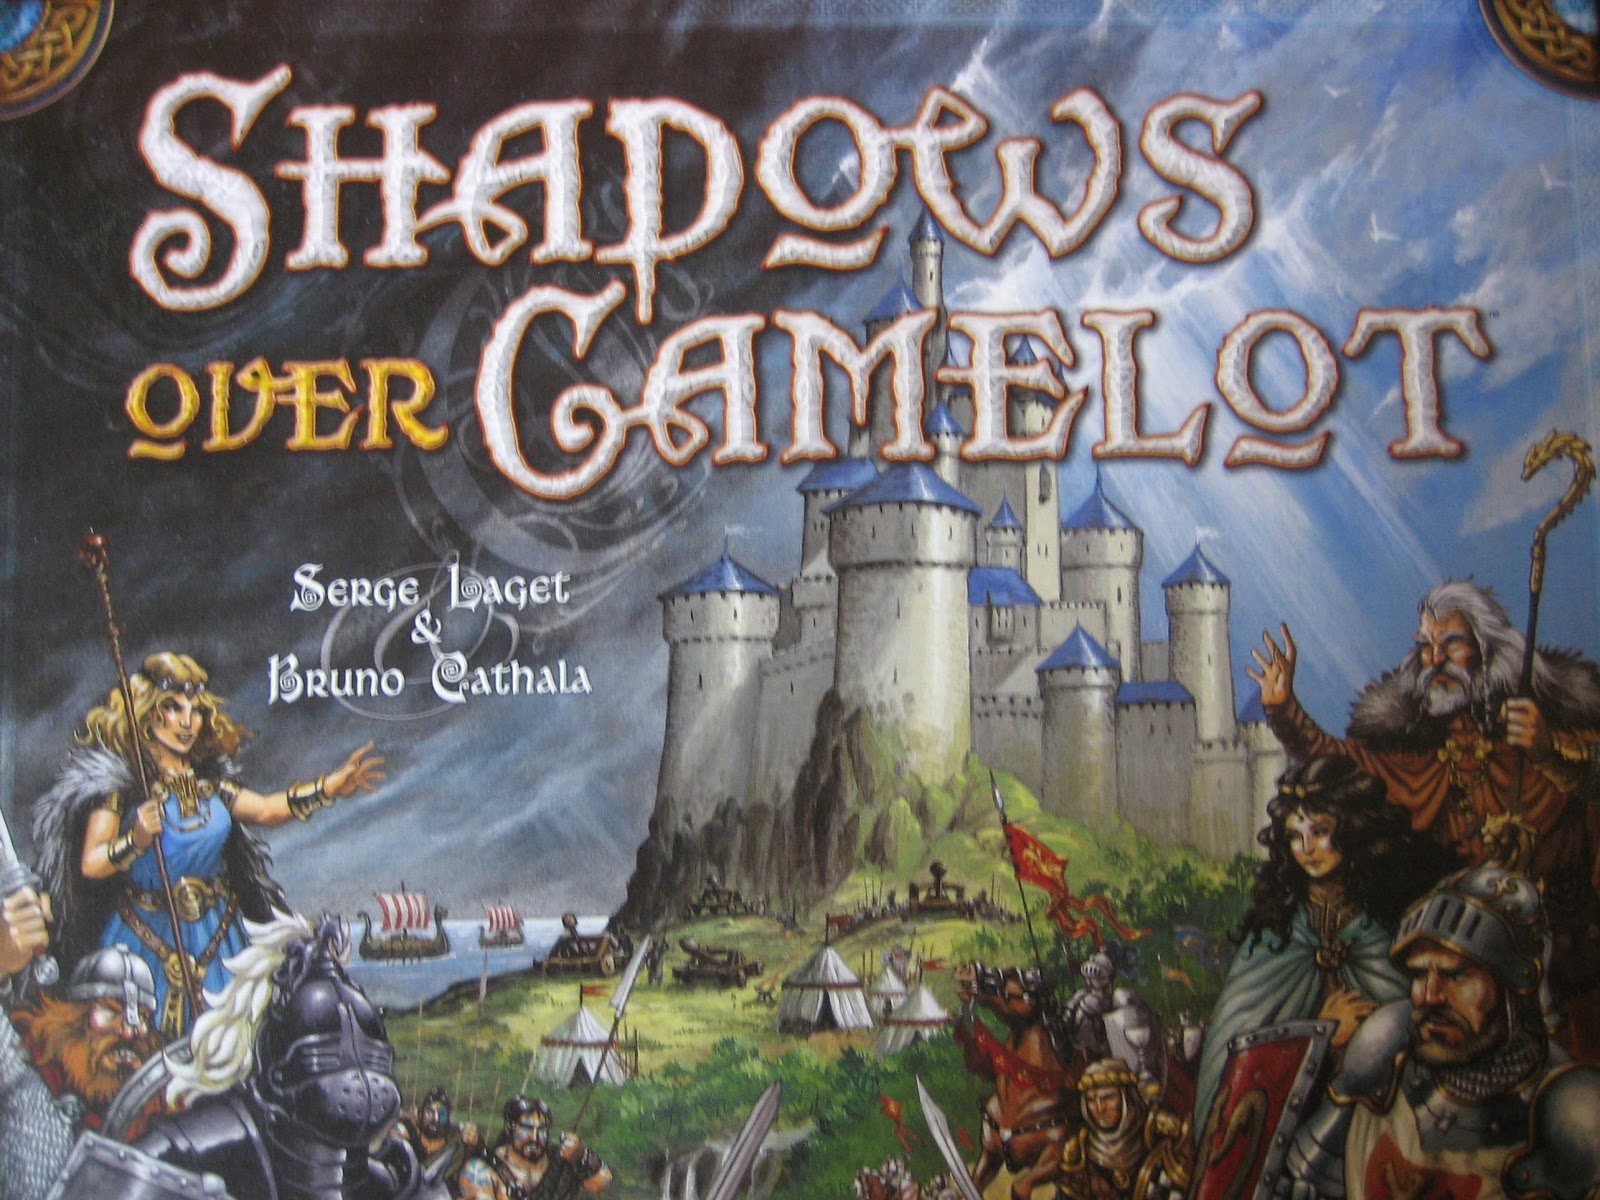 An Image From The Shadows Over Camelot Box